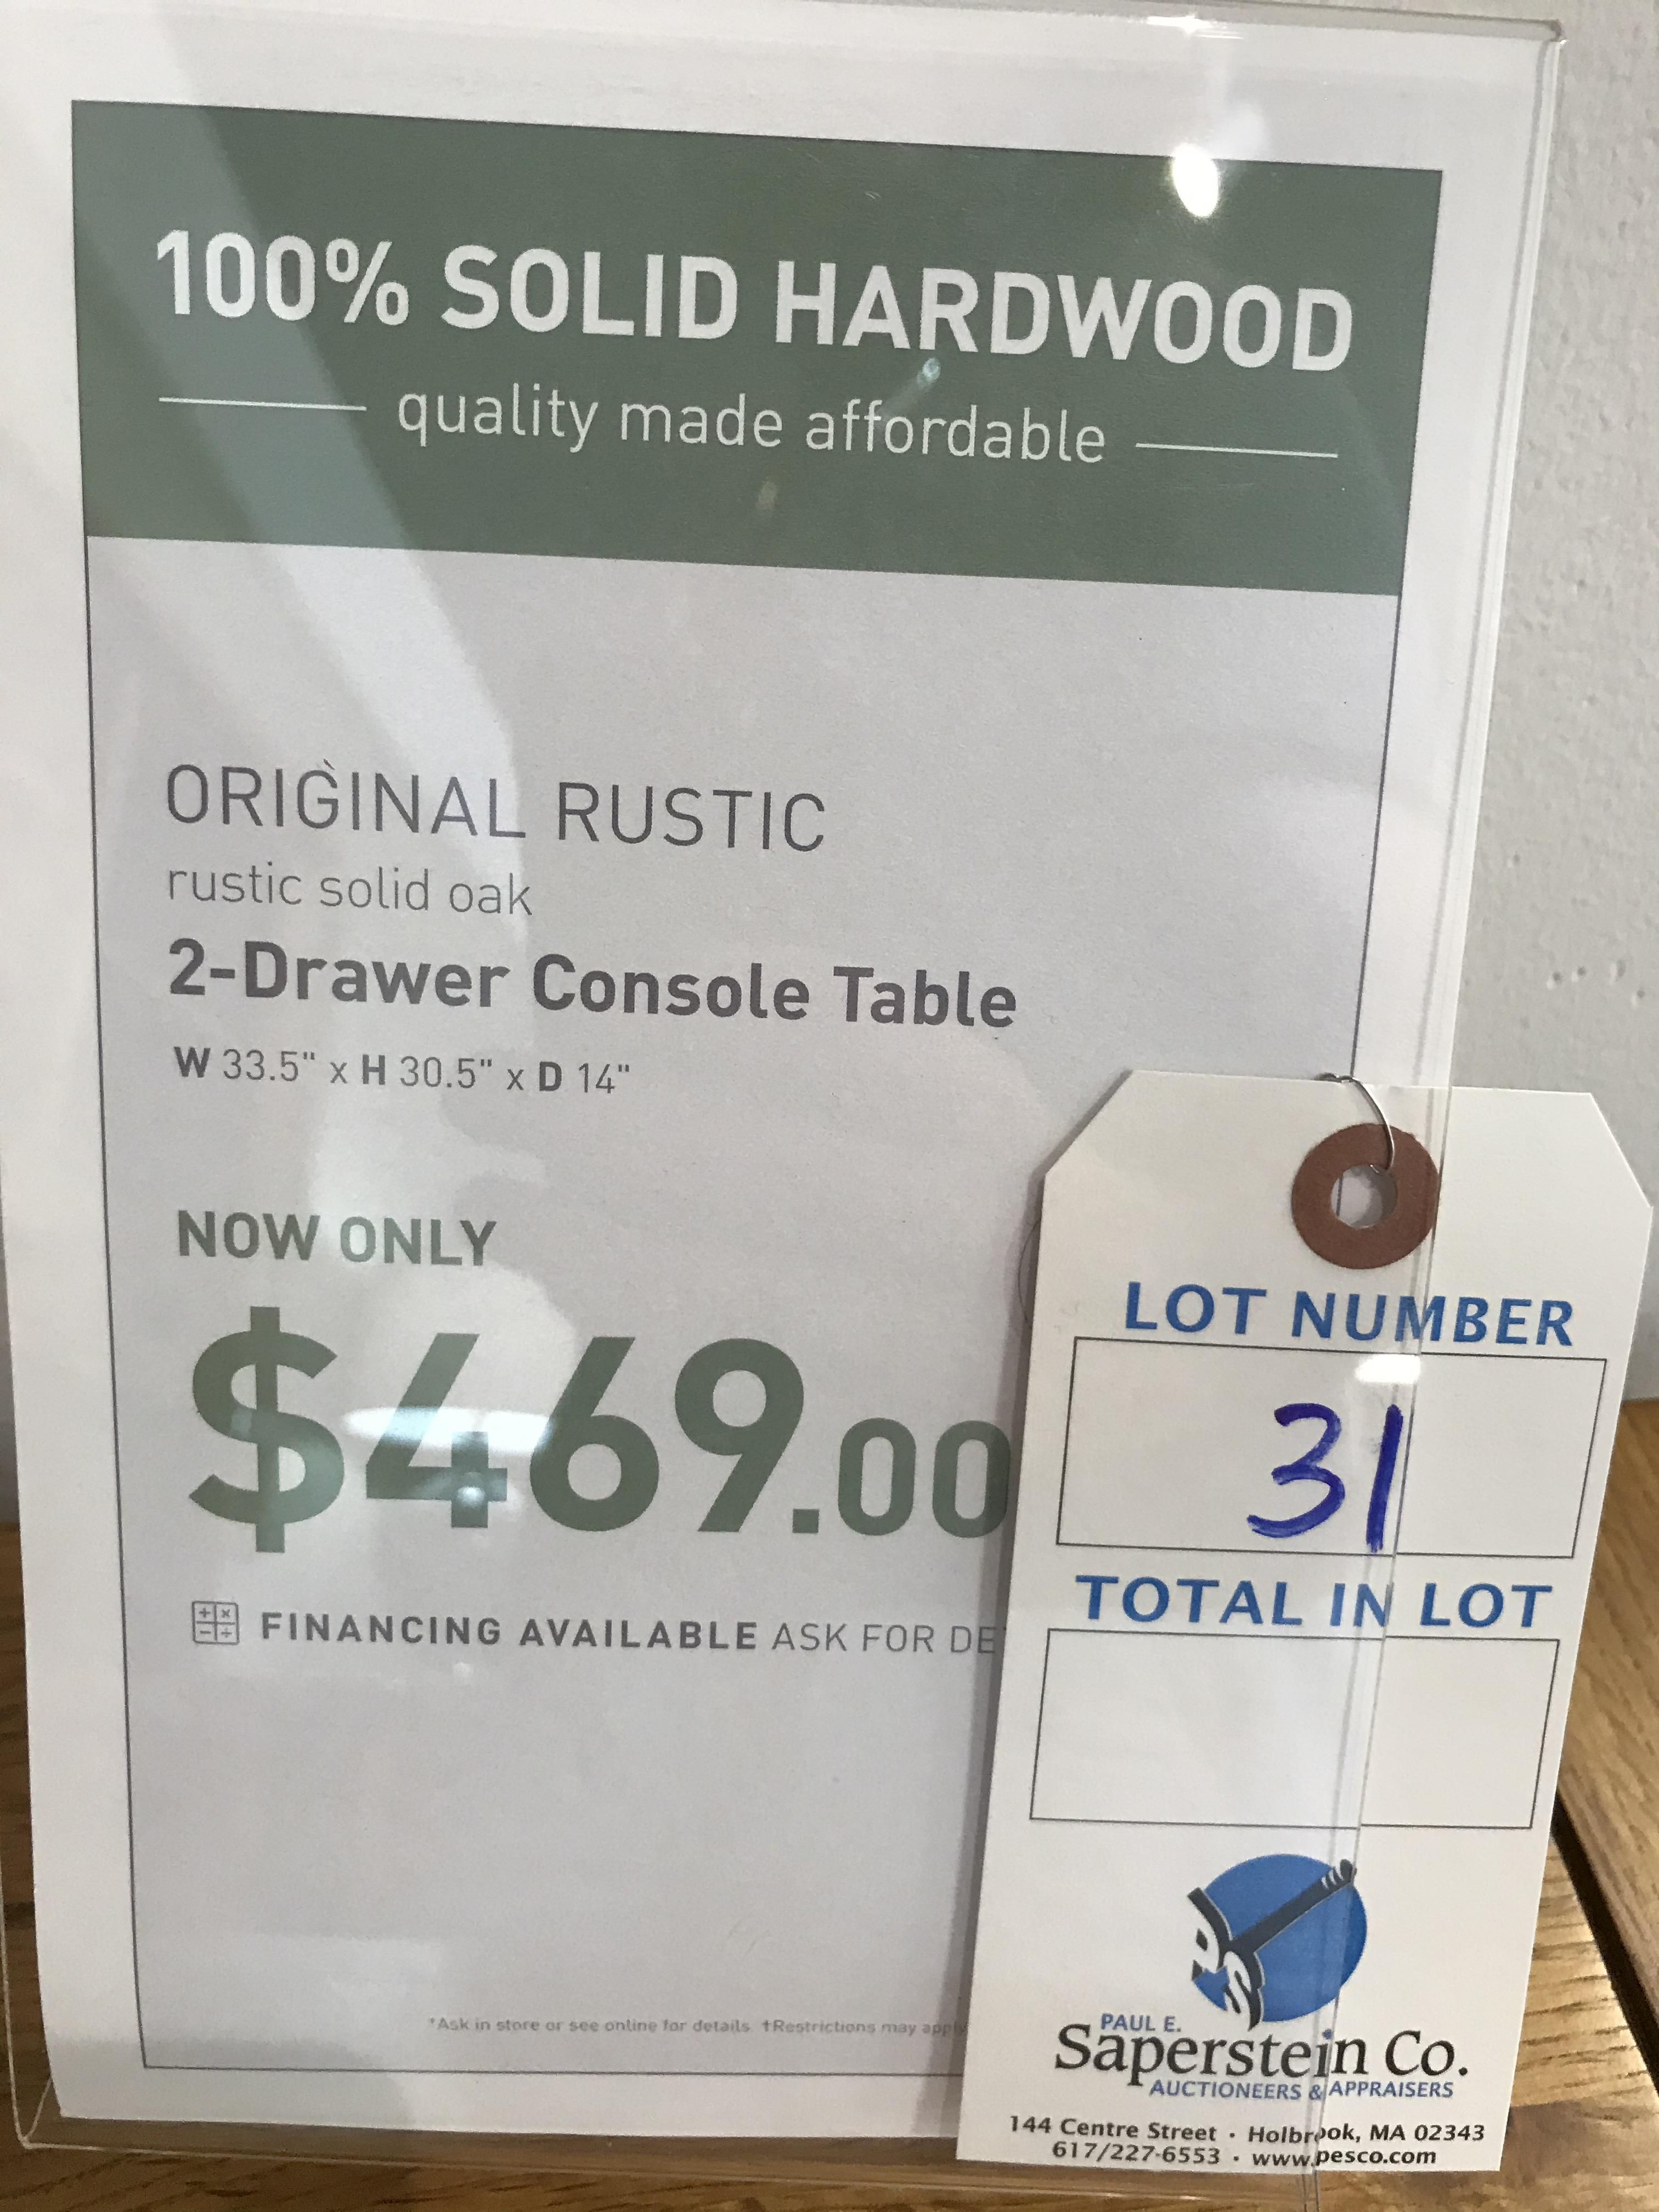 2 Drawer Console Table (Original Rustic) See Picture For Dimensions and Product Info - Image 2 of 2